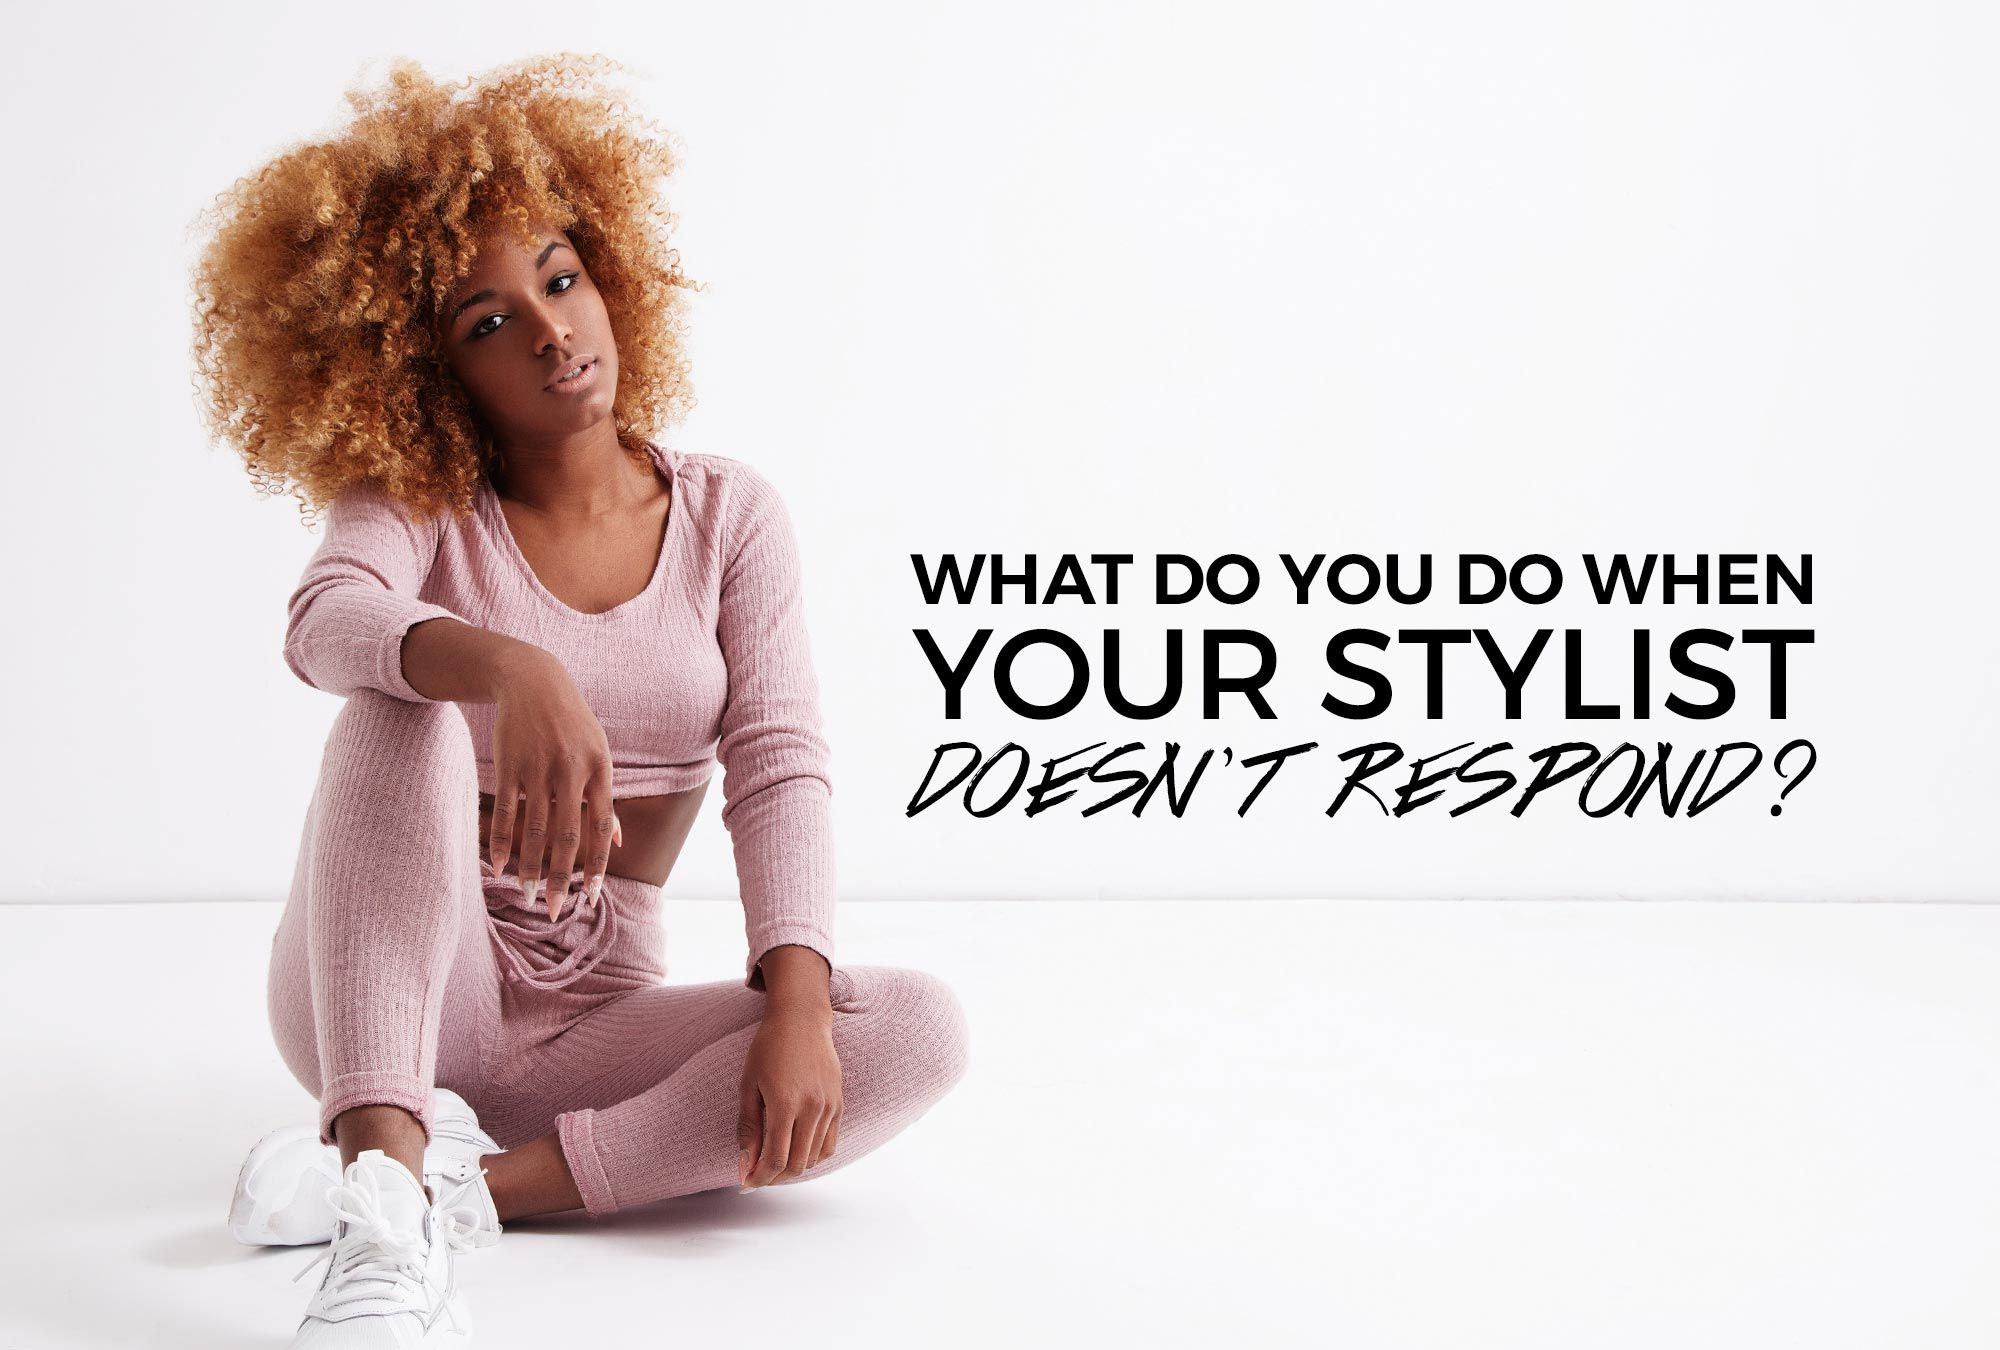 Let's Be Real: What Do You Do When Your Stylist Doesn't Respond?